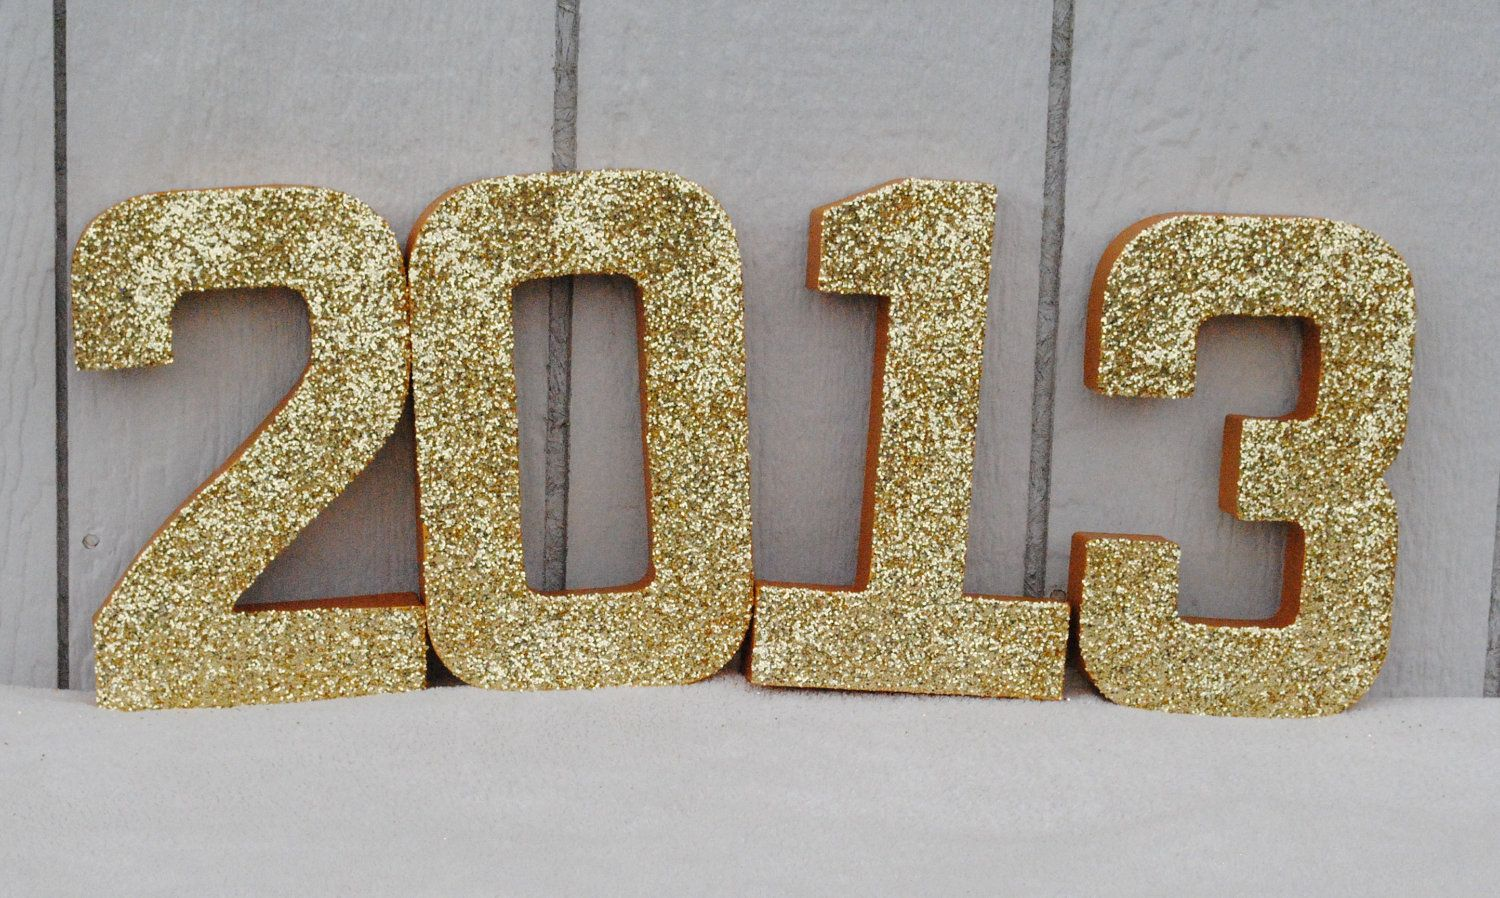 Pin By Cricut On Graduation Centerpieces New Years Eve Party New Years Party New Years Eve